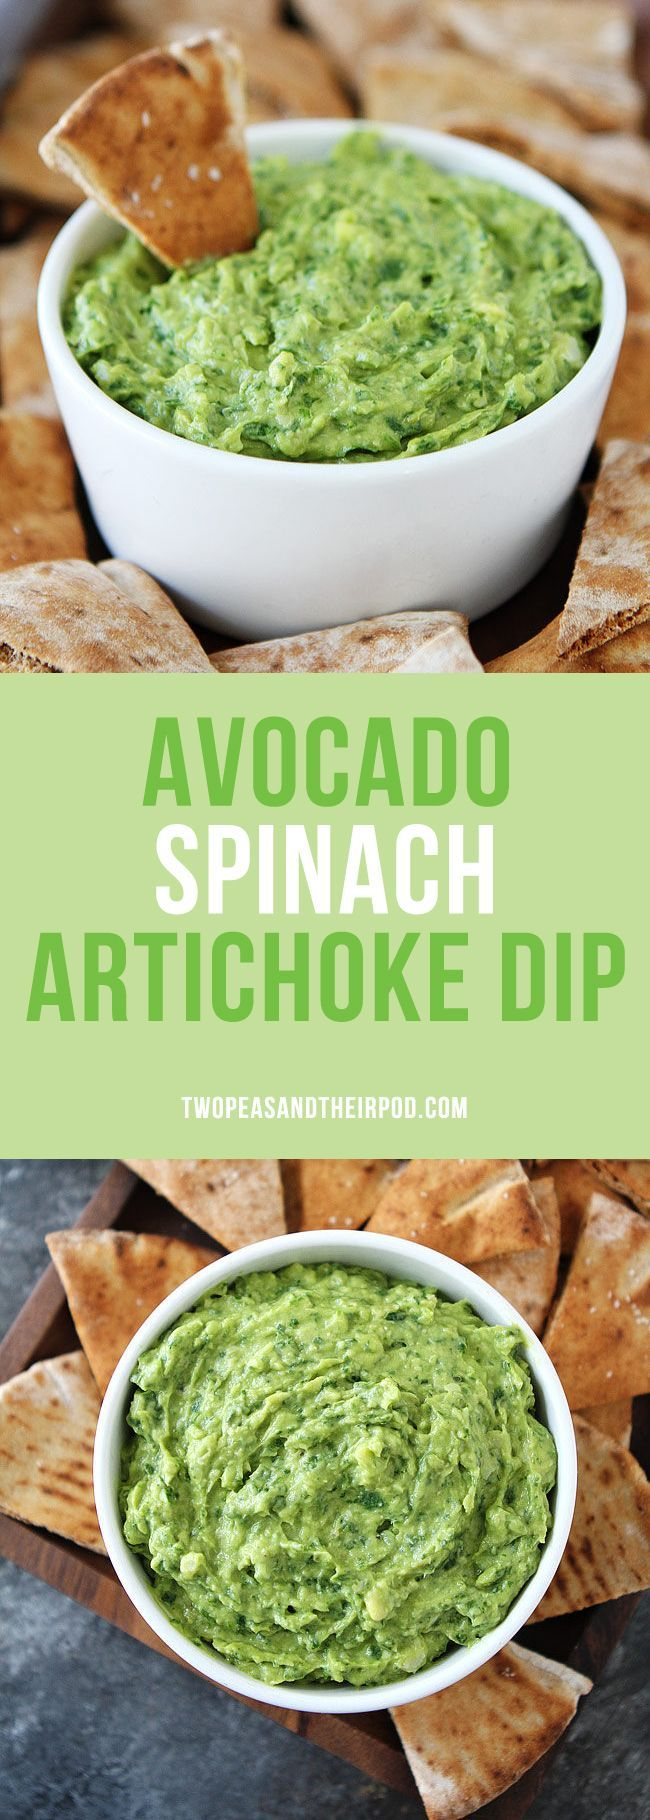 Avocado Spinach Artichoke Dip is the perfect dip for parties, potlucks, game day, and every day snacking. It is vegan, gluten-free, dairy-free, and SO delicious! Serve with pita chips, crackers, or cut up vegetables. Everyone loves this easy and healthy d